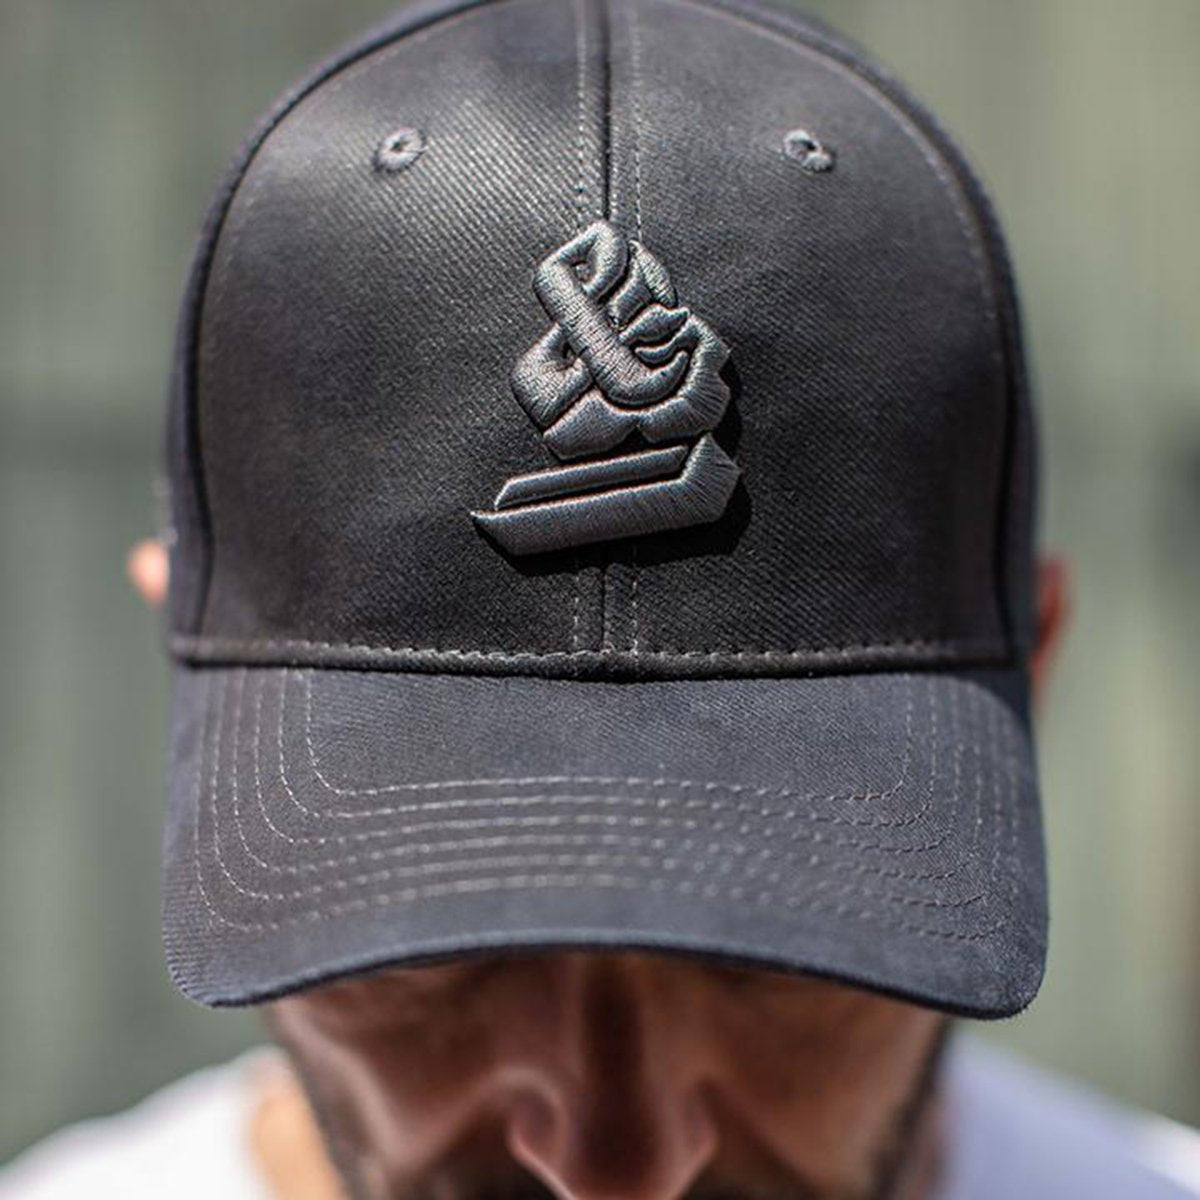 The GARAGE Baseball Cap